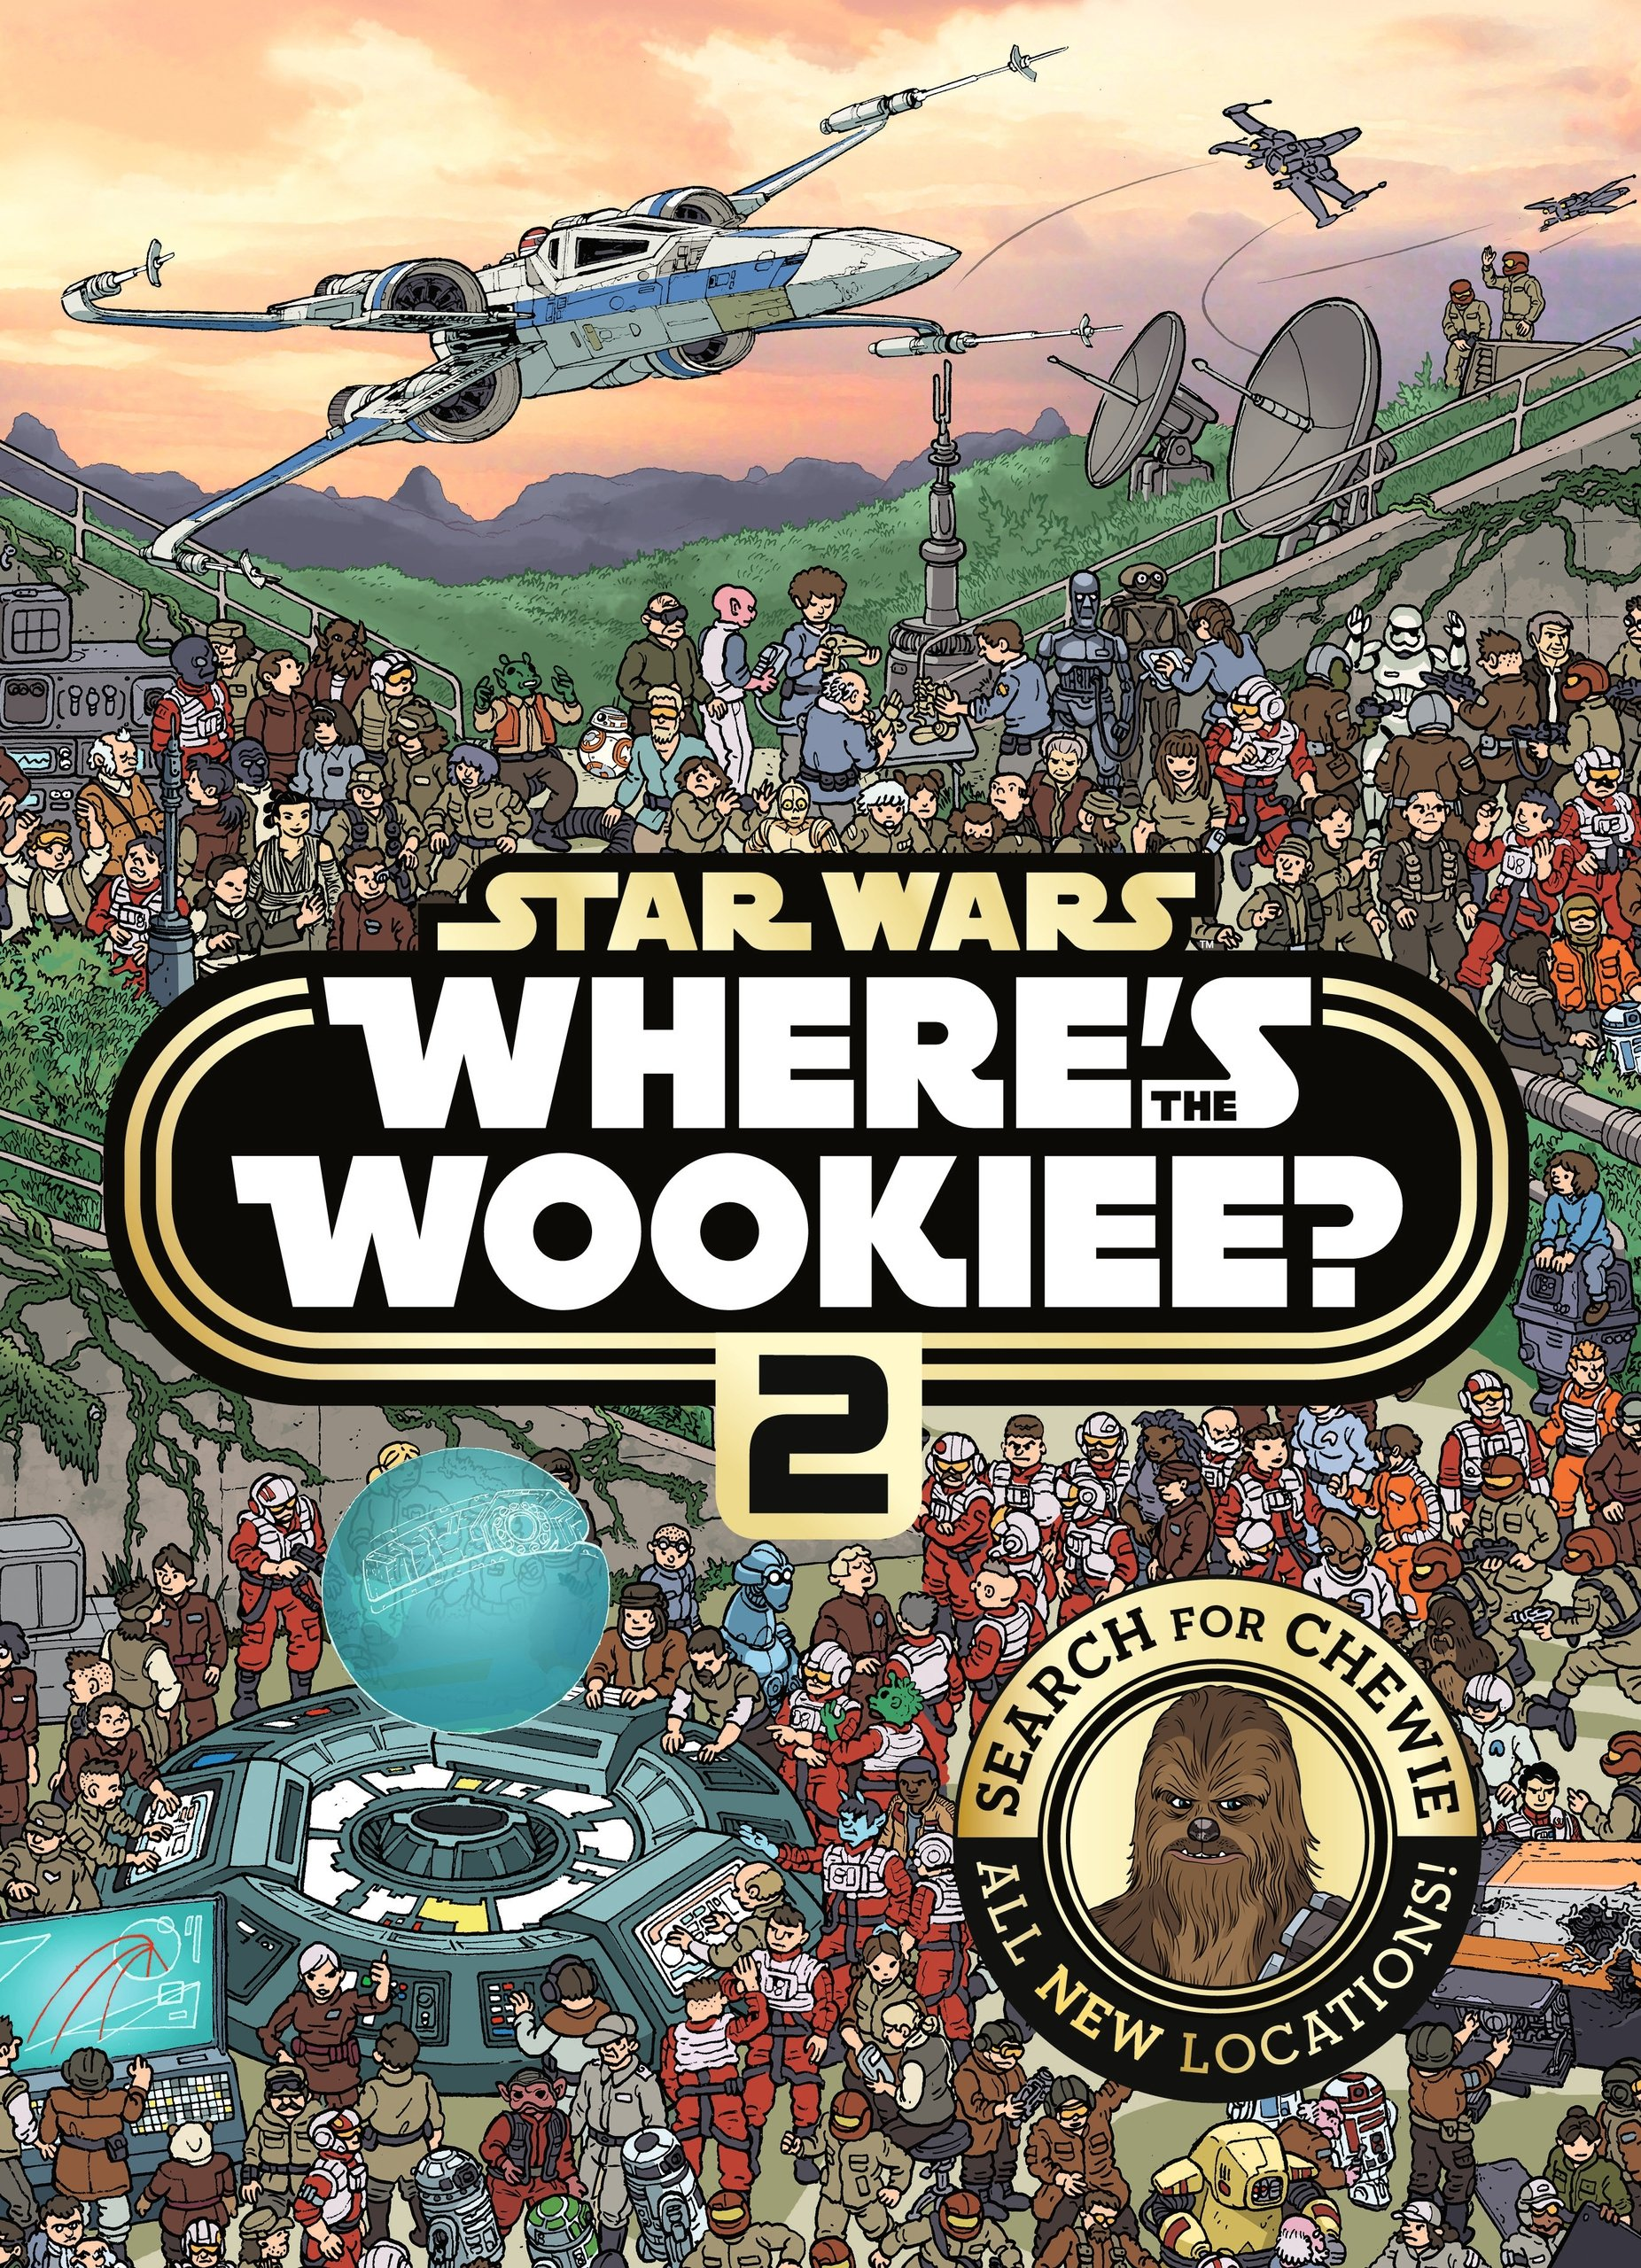 Star Wars: Where's the Wookiee 2 (paperback)